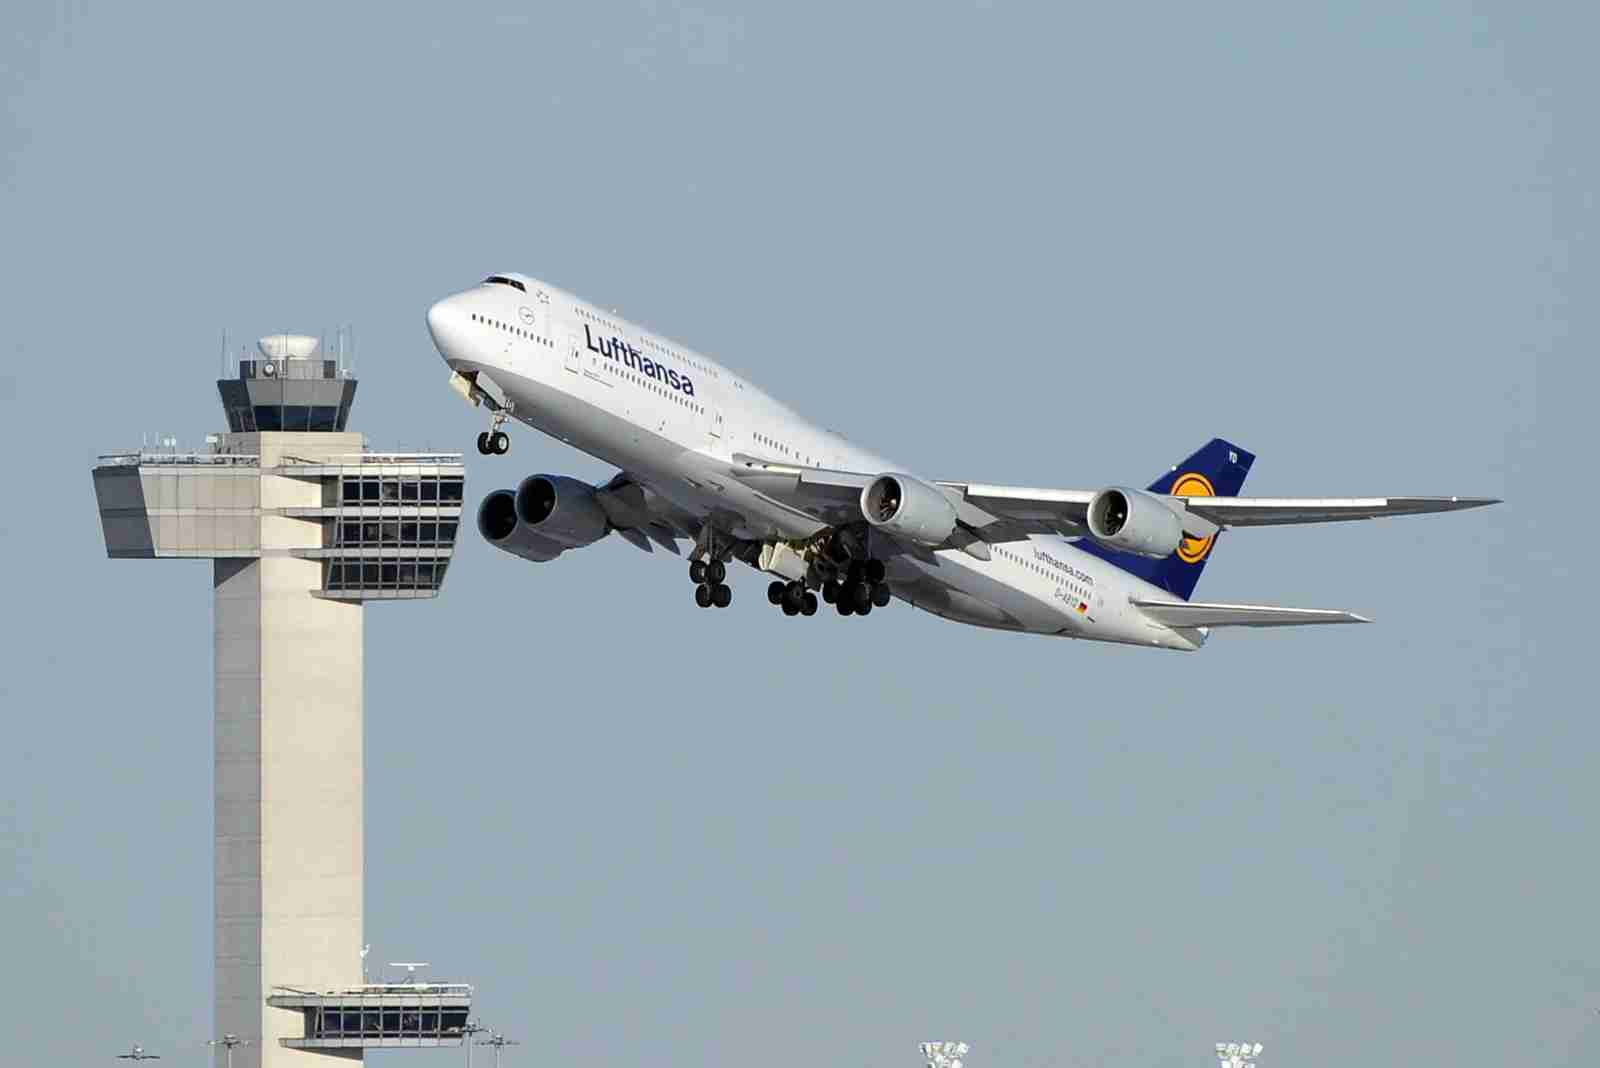 A Lufthansa Boeing 747-8 takes off from JFK